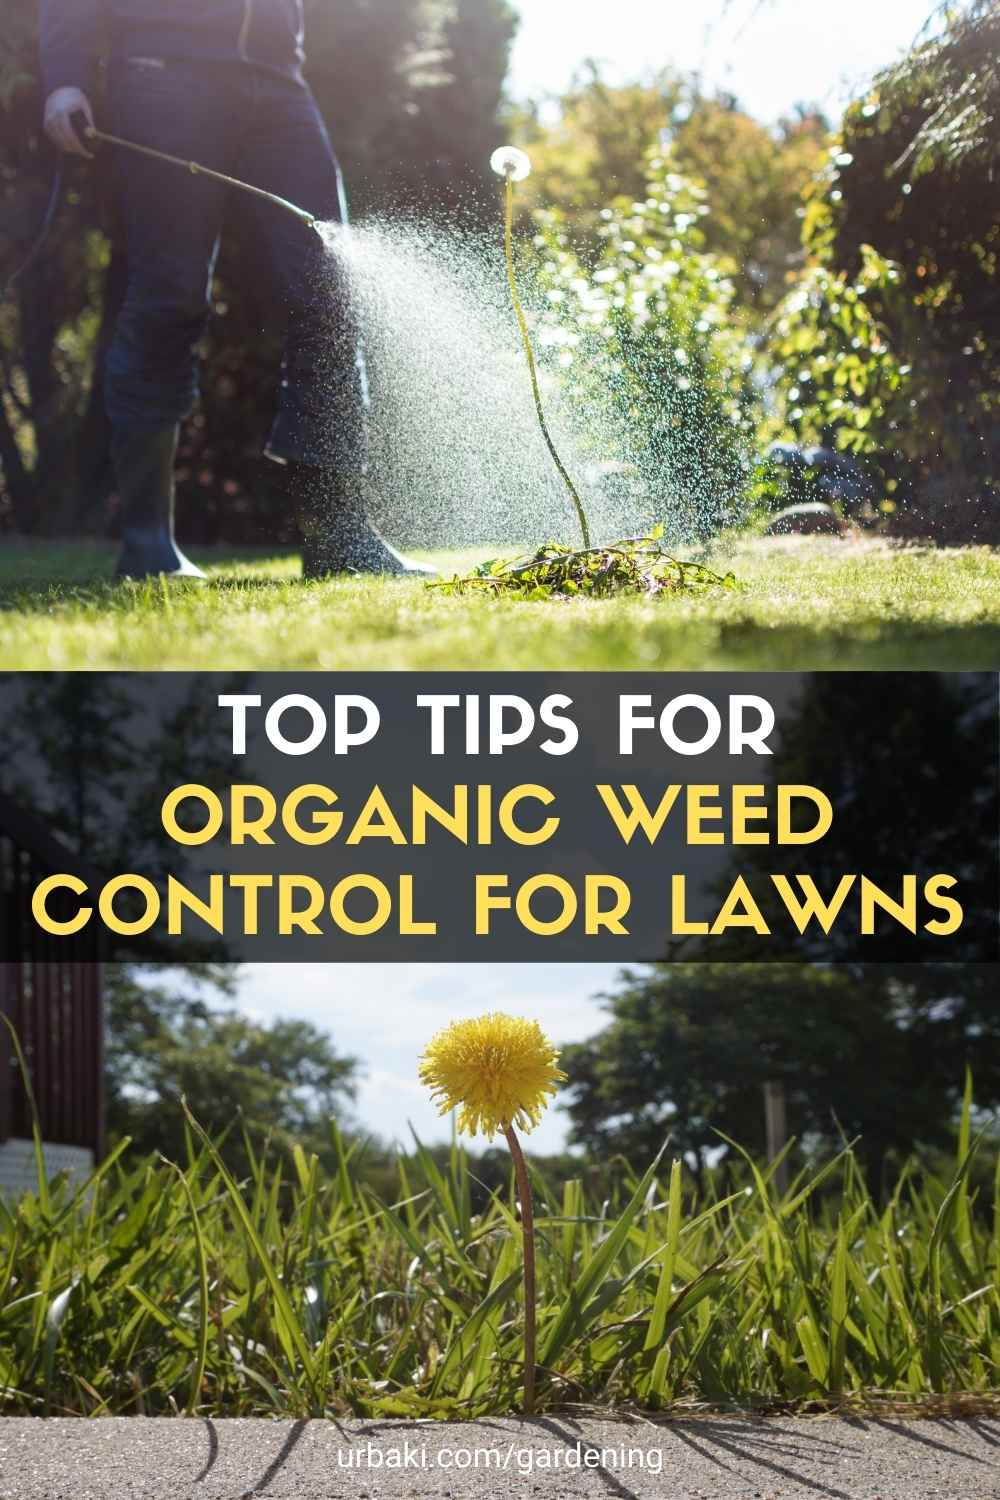 Organic Weed Control for Lawns